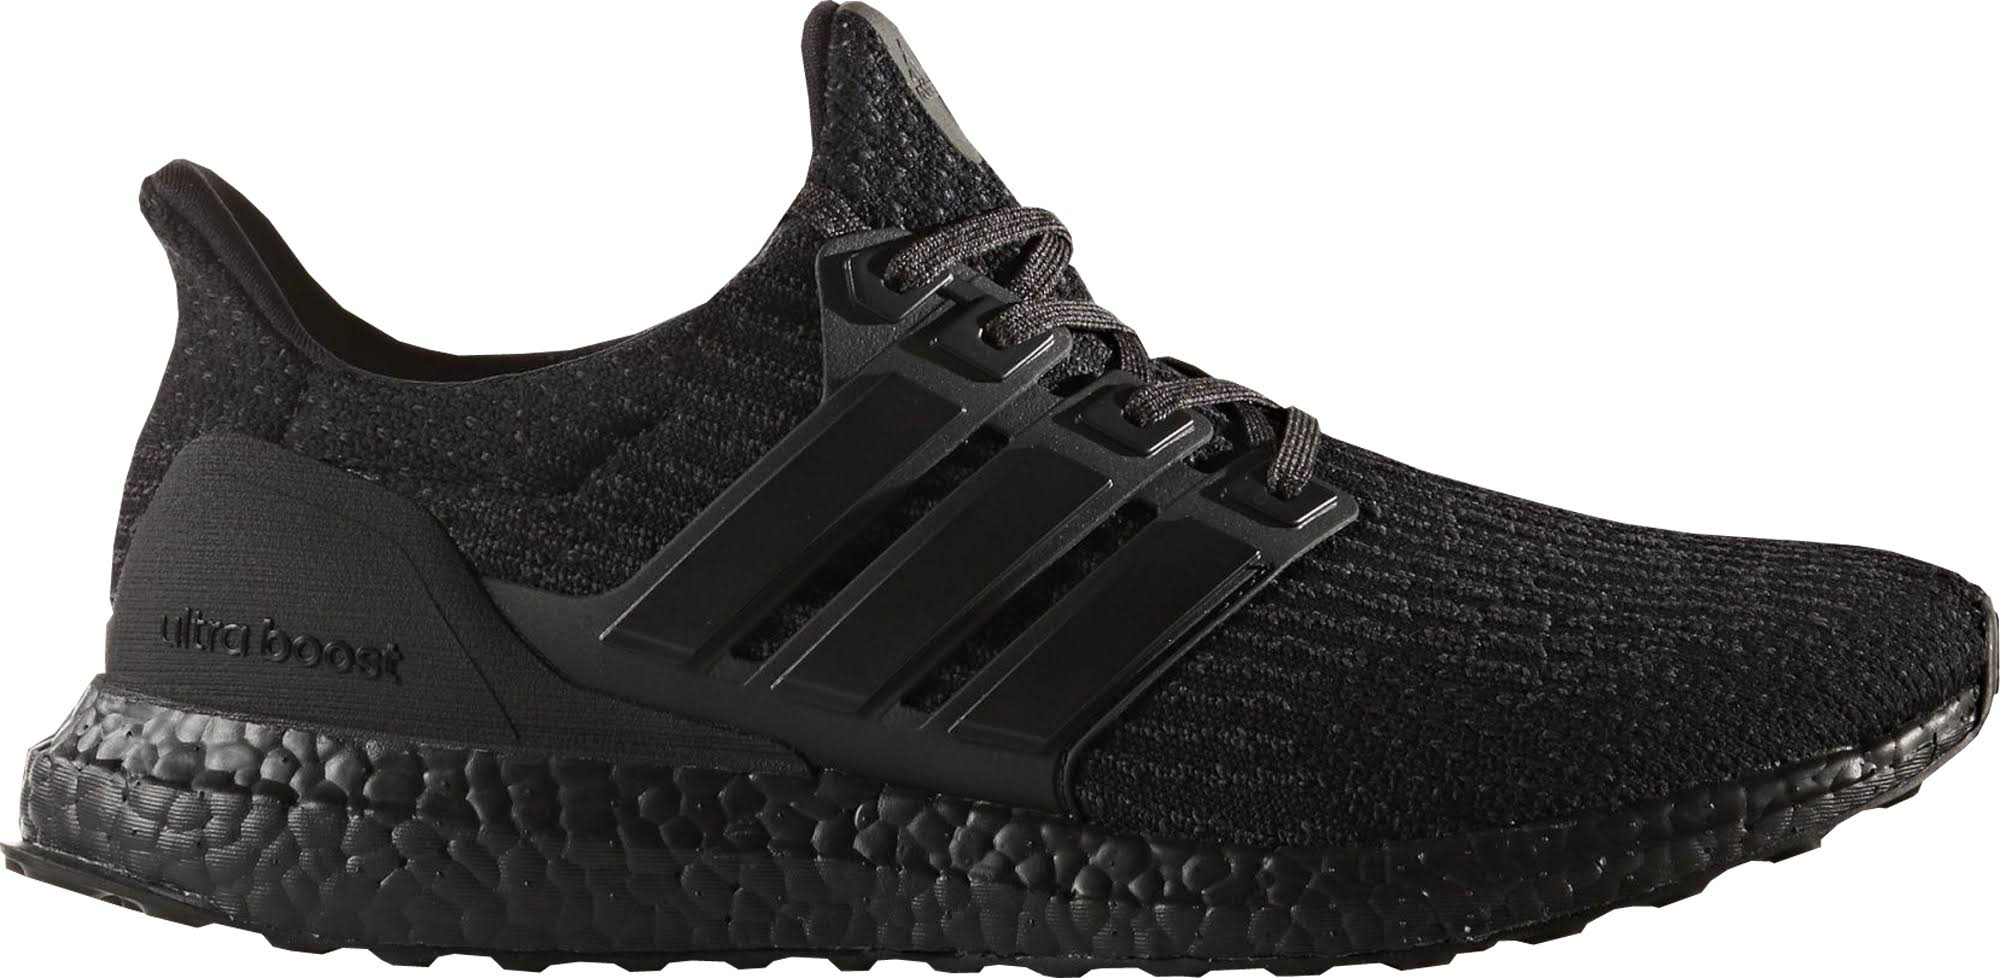 Adidas Ultra Boost Black/Black